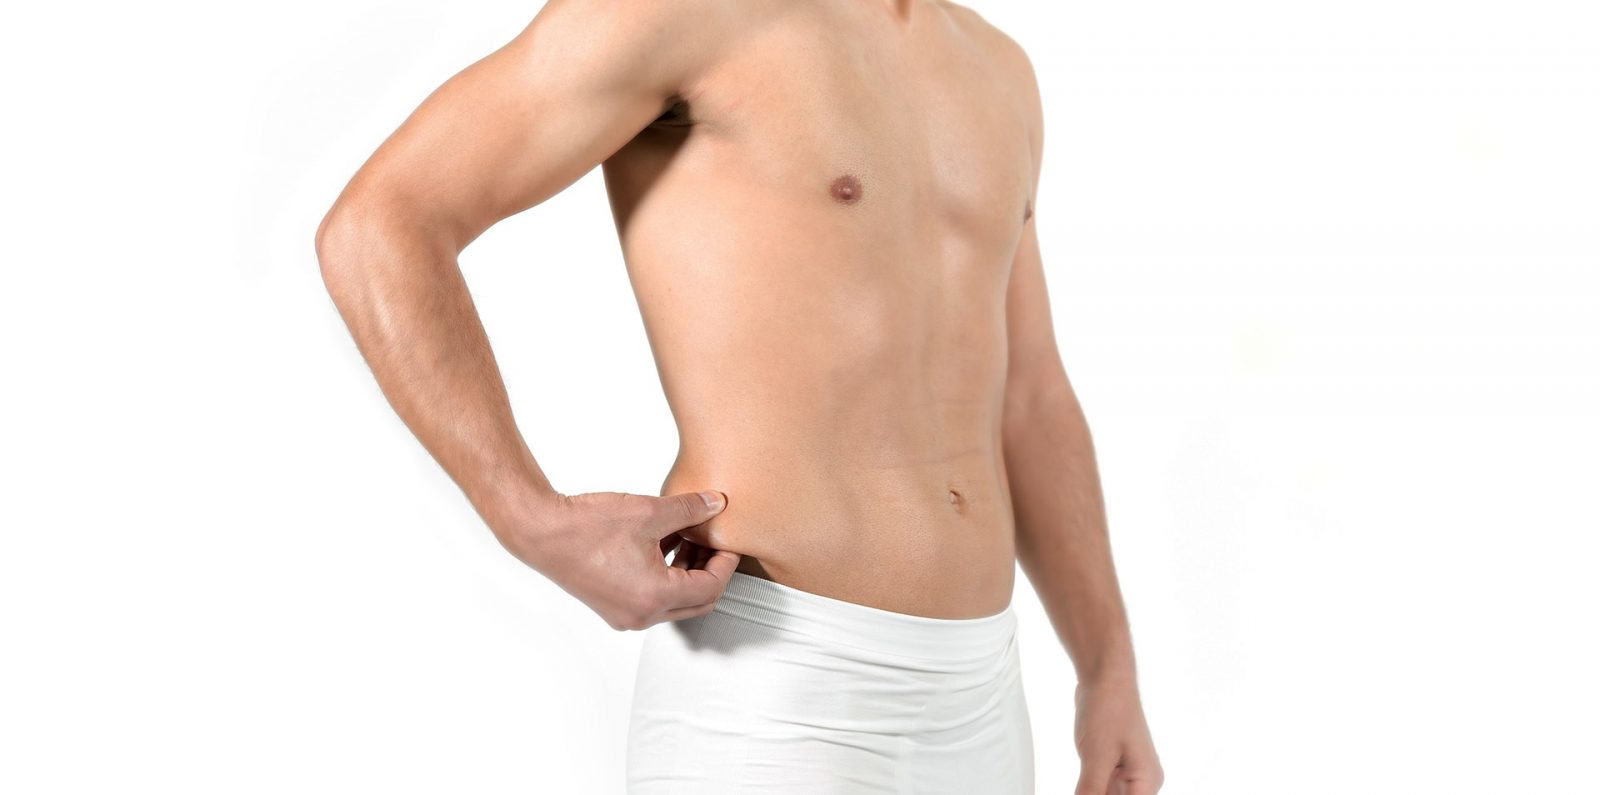 bodycience, clinicas, Gordura Localizada